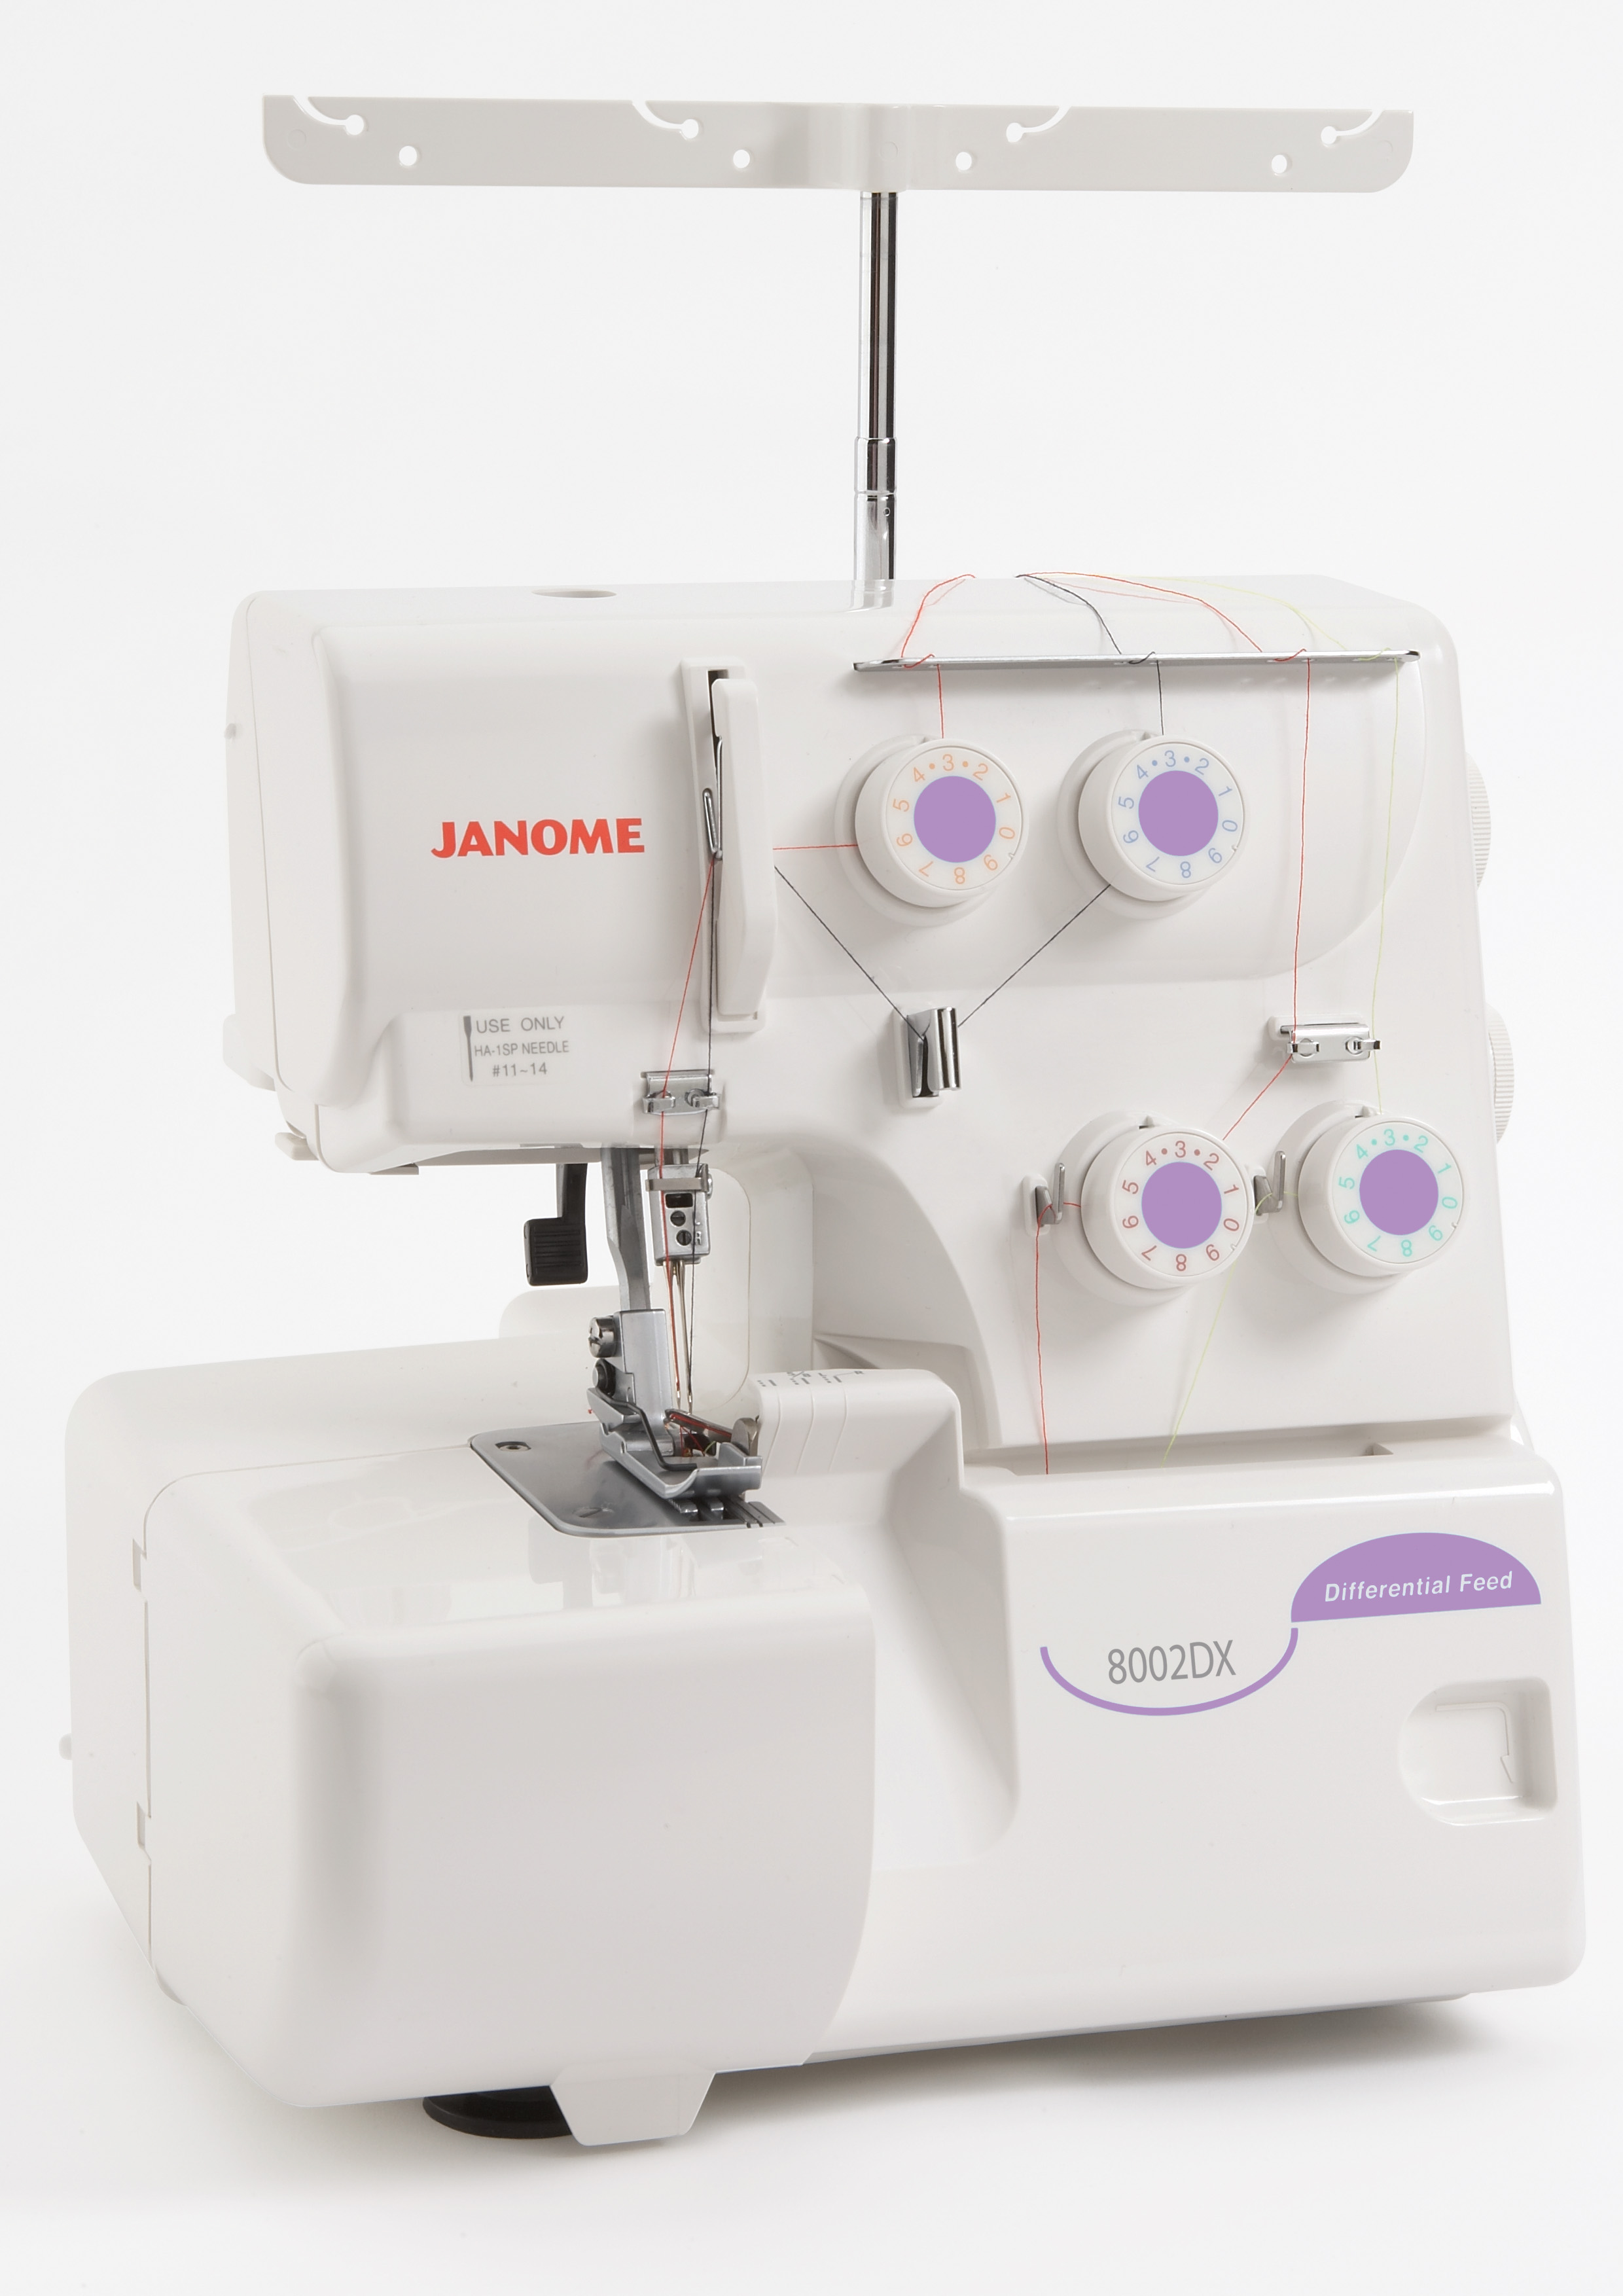 Janome 8002DX and DG